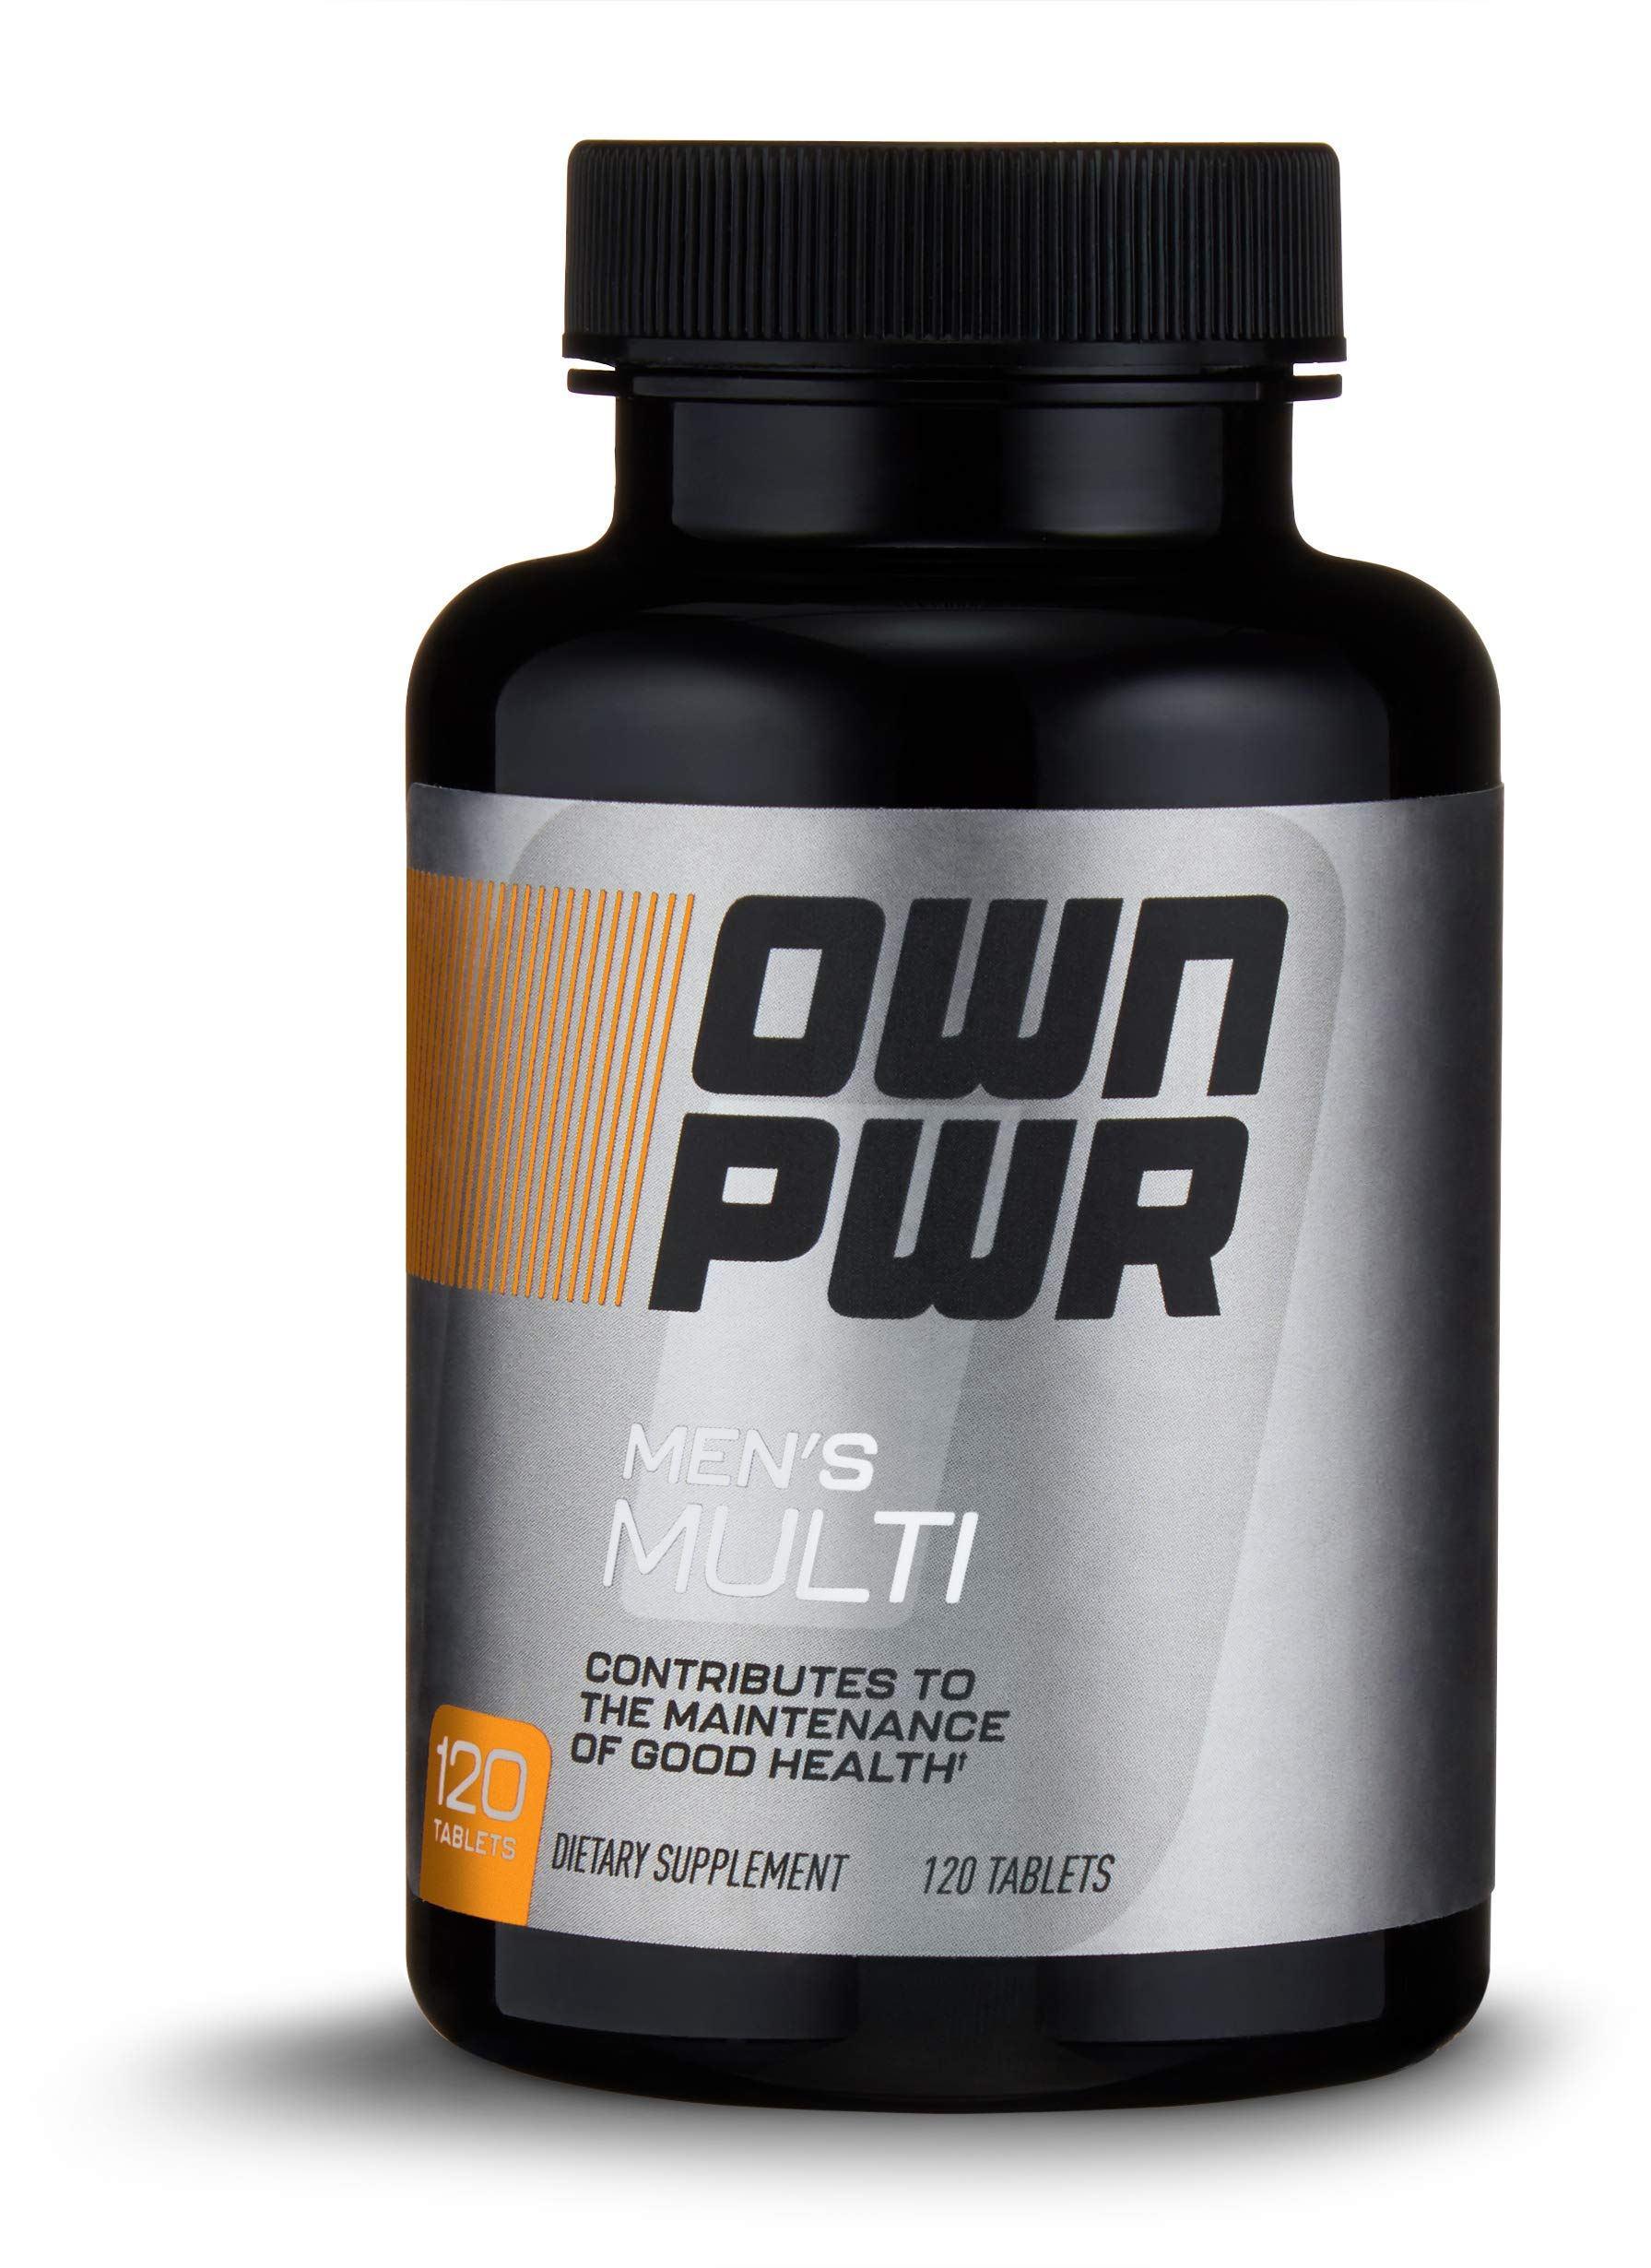 OWN PWR Men's Multivitamin, 120 Tablets, 2 Month Supply